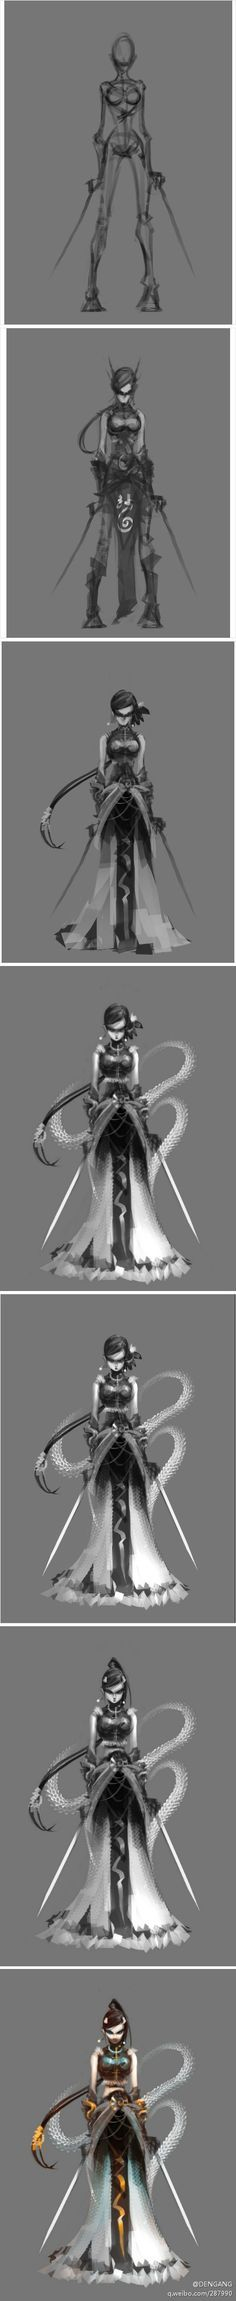 (2) Character illustration   concept character   Pinterest